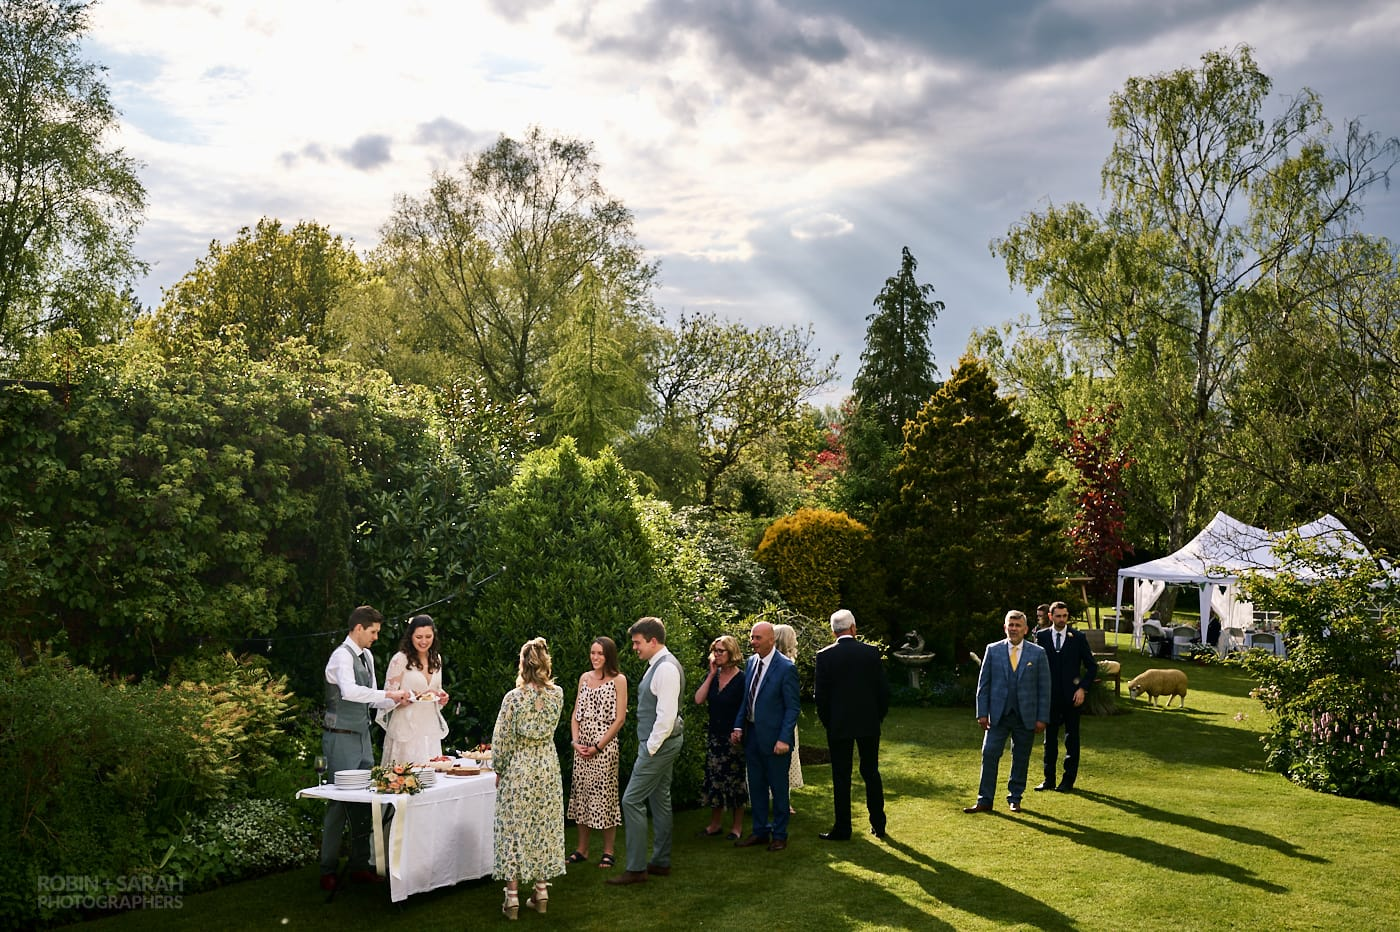 Wedding guests queue up to get pudding from bride and groom at small garden wedding